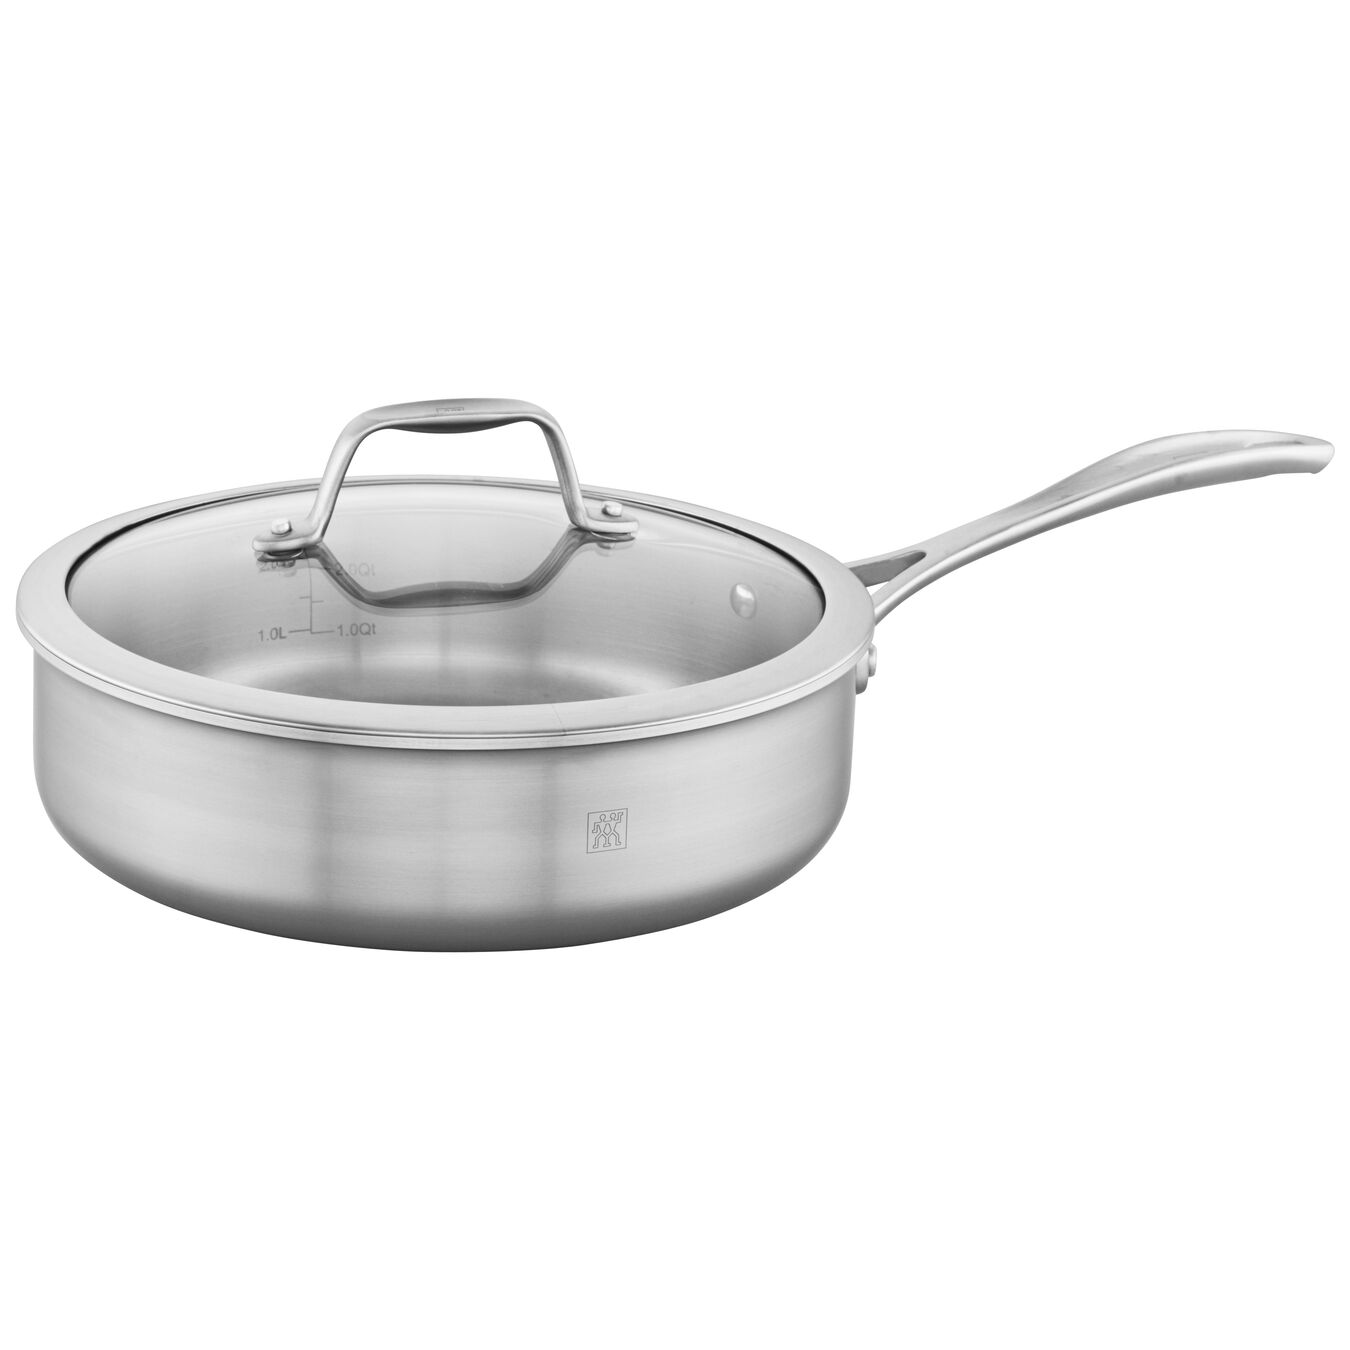 Ceramic, 10-pc, stainless steel, Cookware Set,,large 7